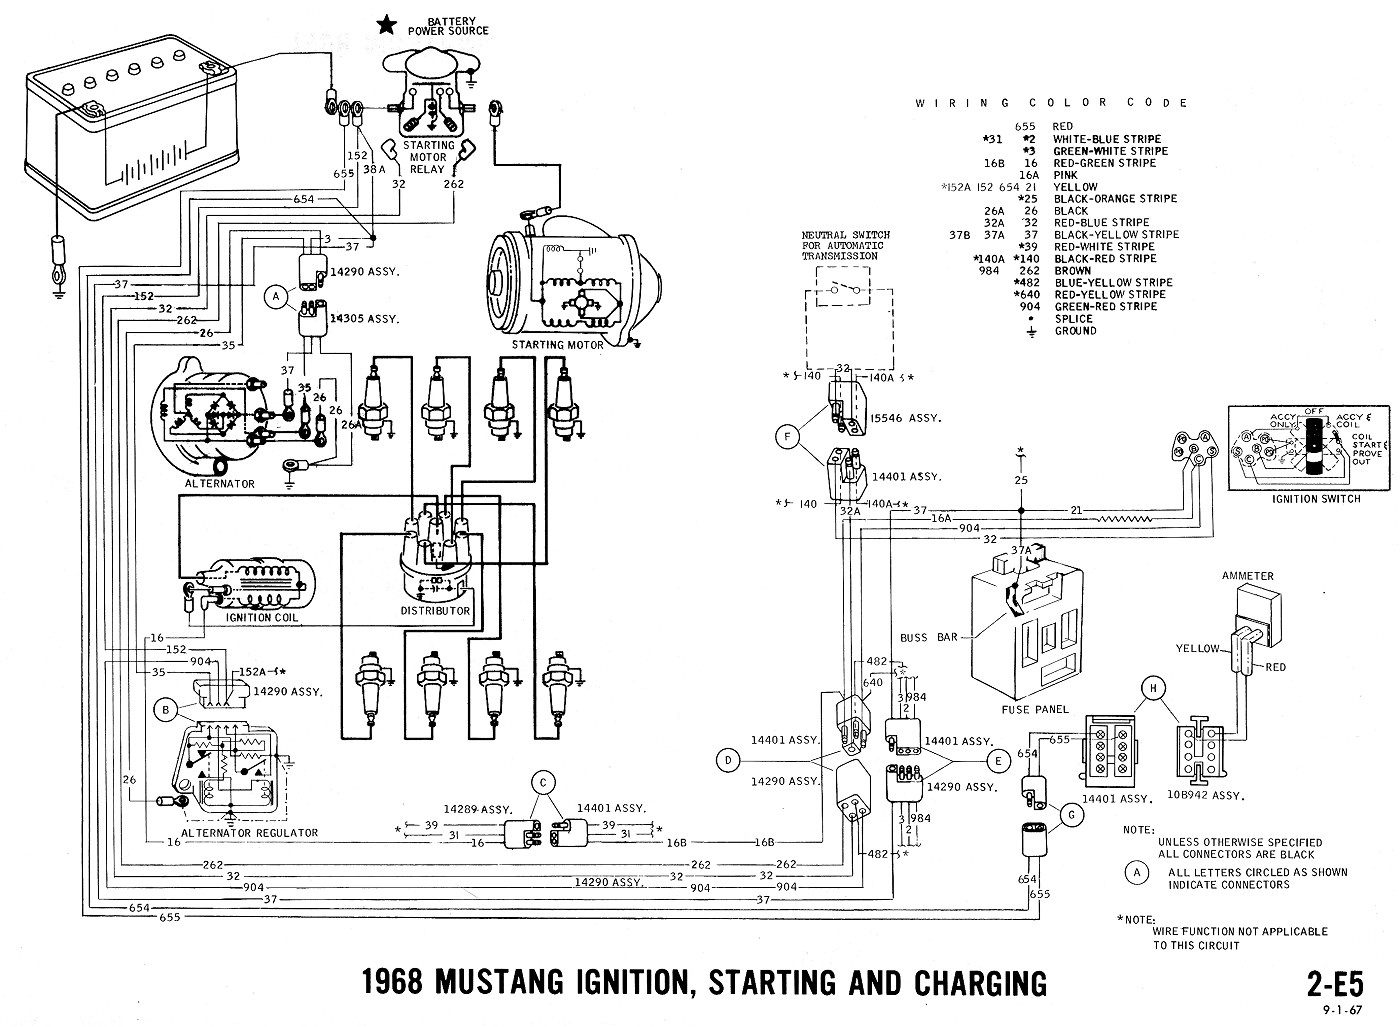 1965 F100 Fuse Box 1968 Mustang Diagram Books Of Wiring Diagrams Evolving Software Rh Peterfranza Com Ford